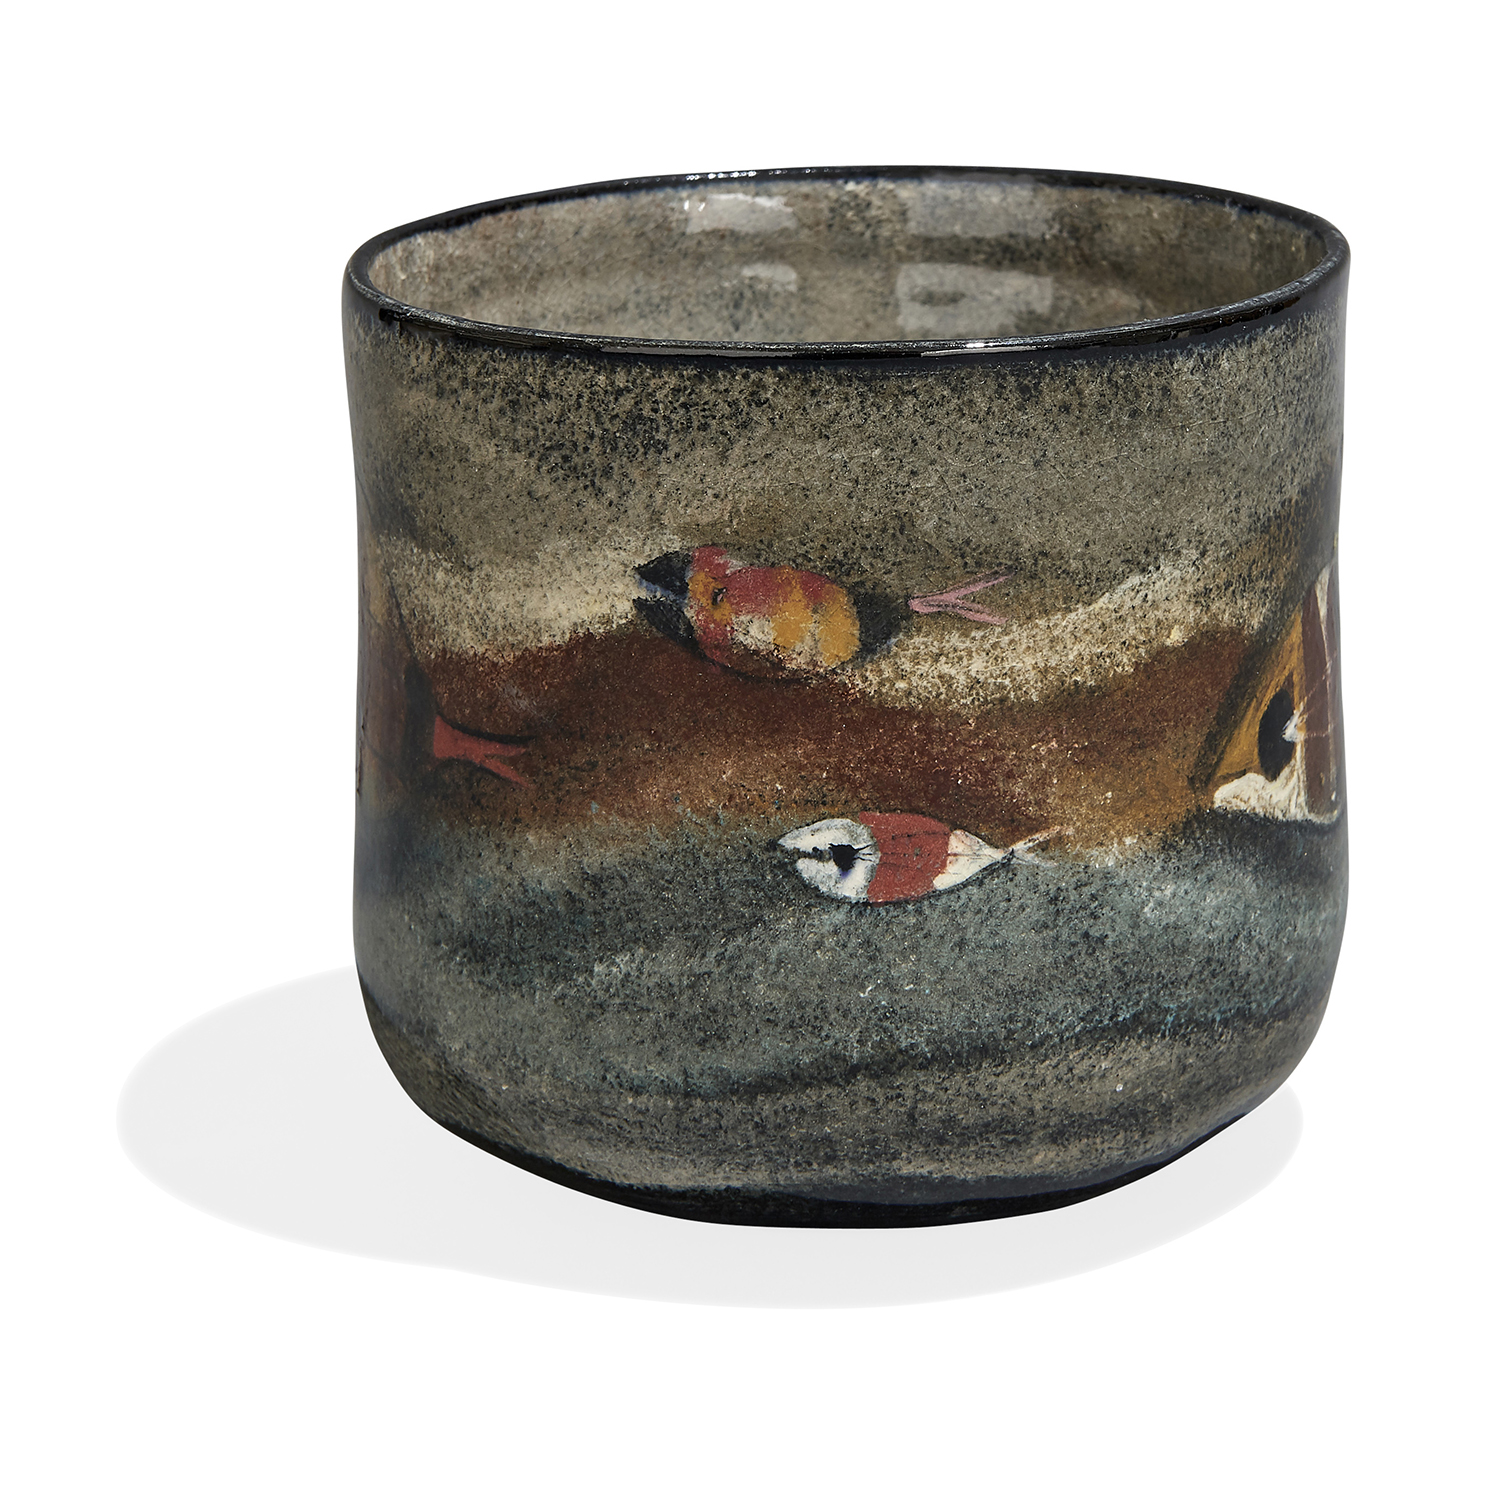 """Polia Pillin (1909-1992) cylindrical vase decorated with fish 4 7/8""""dia x 4 5/8""""h"""